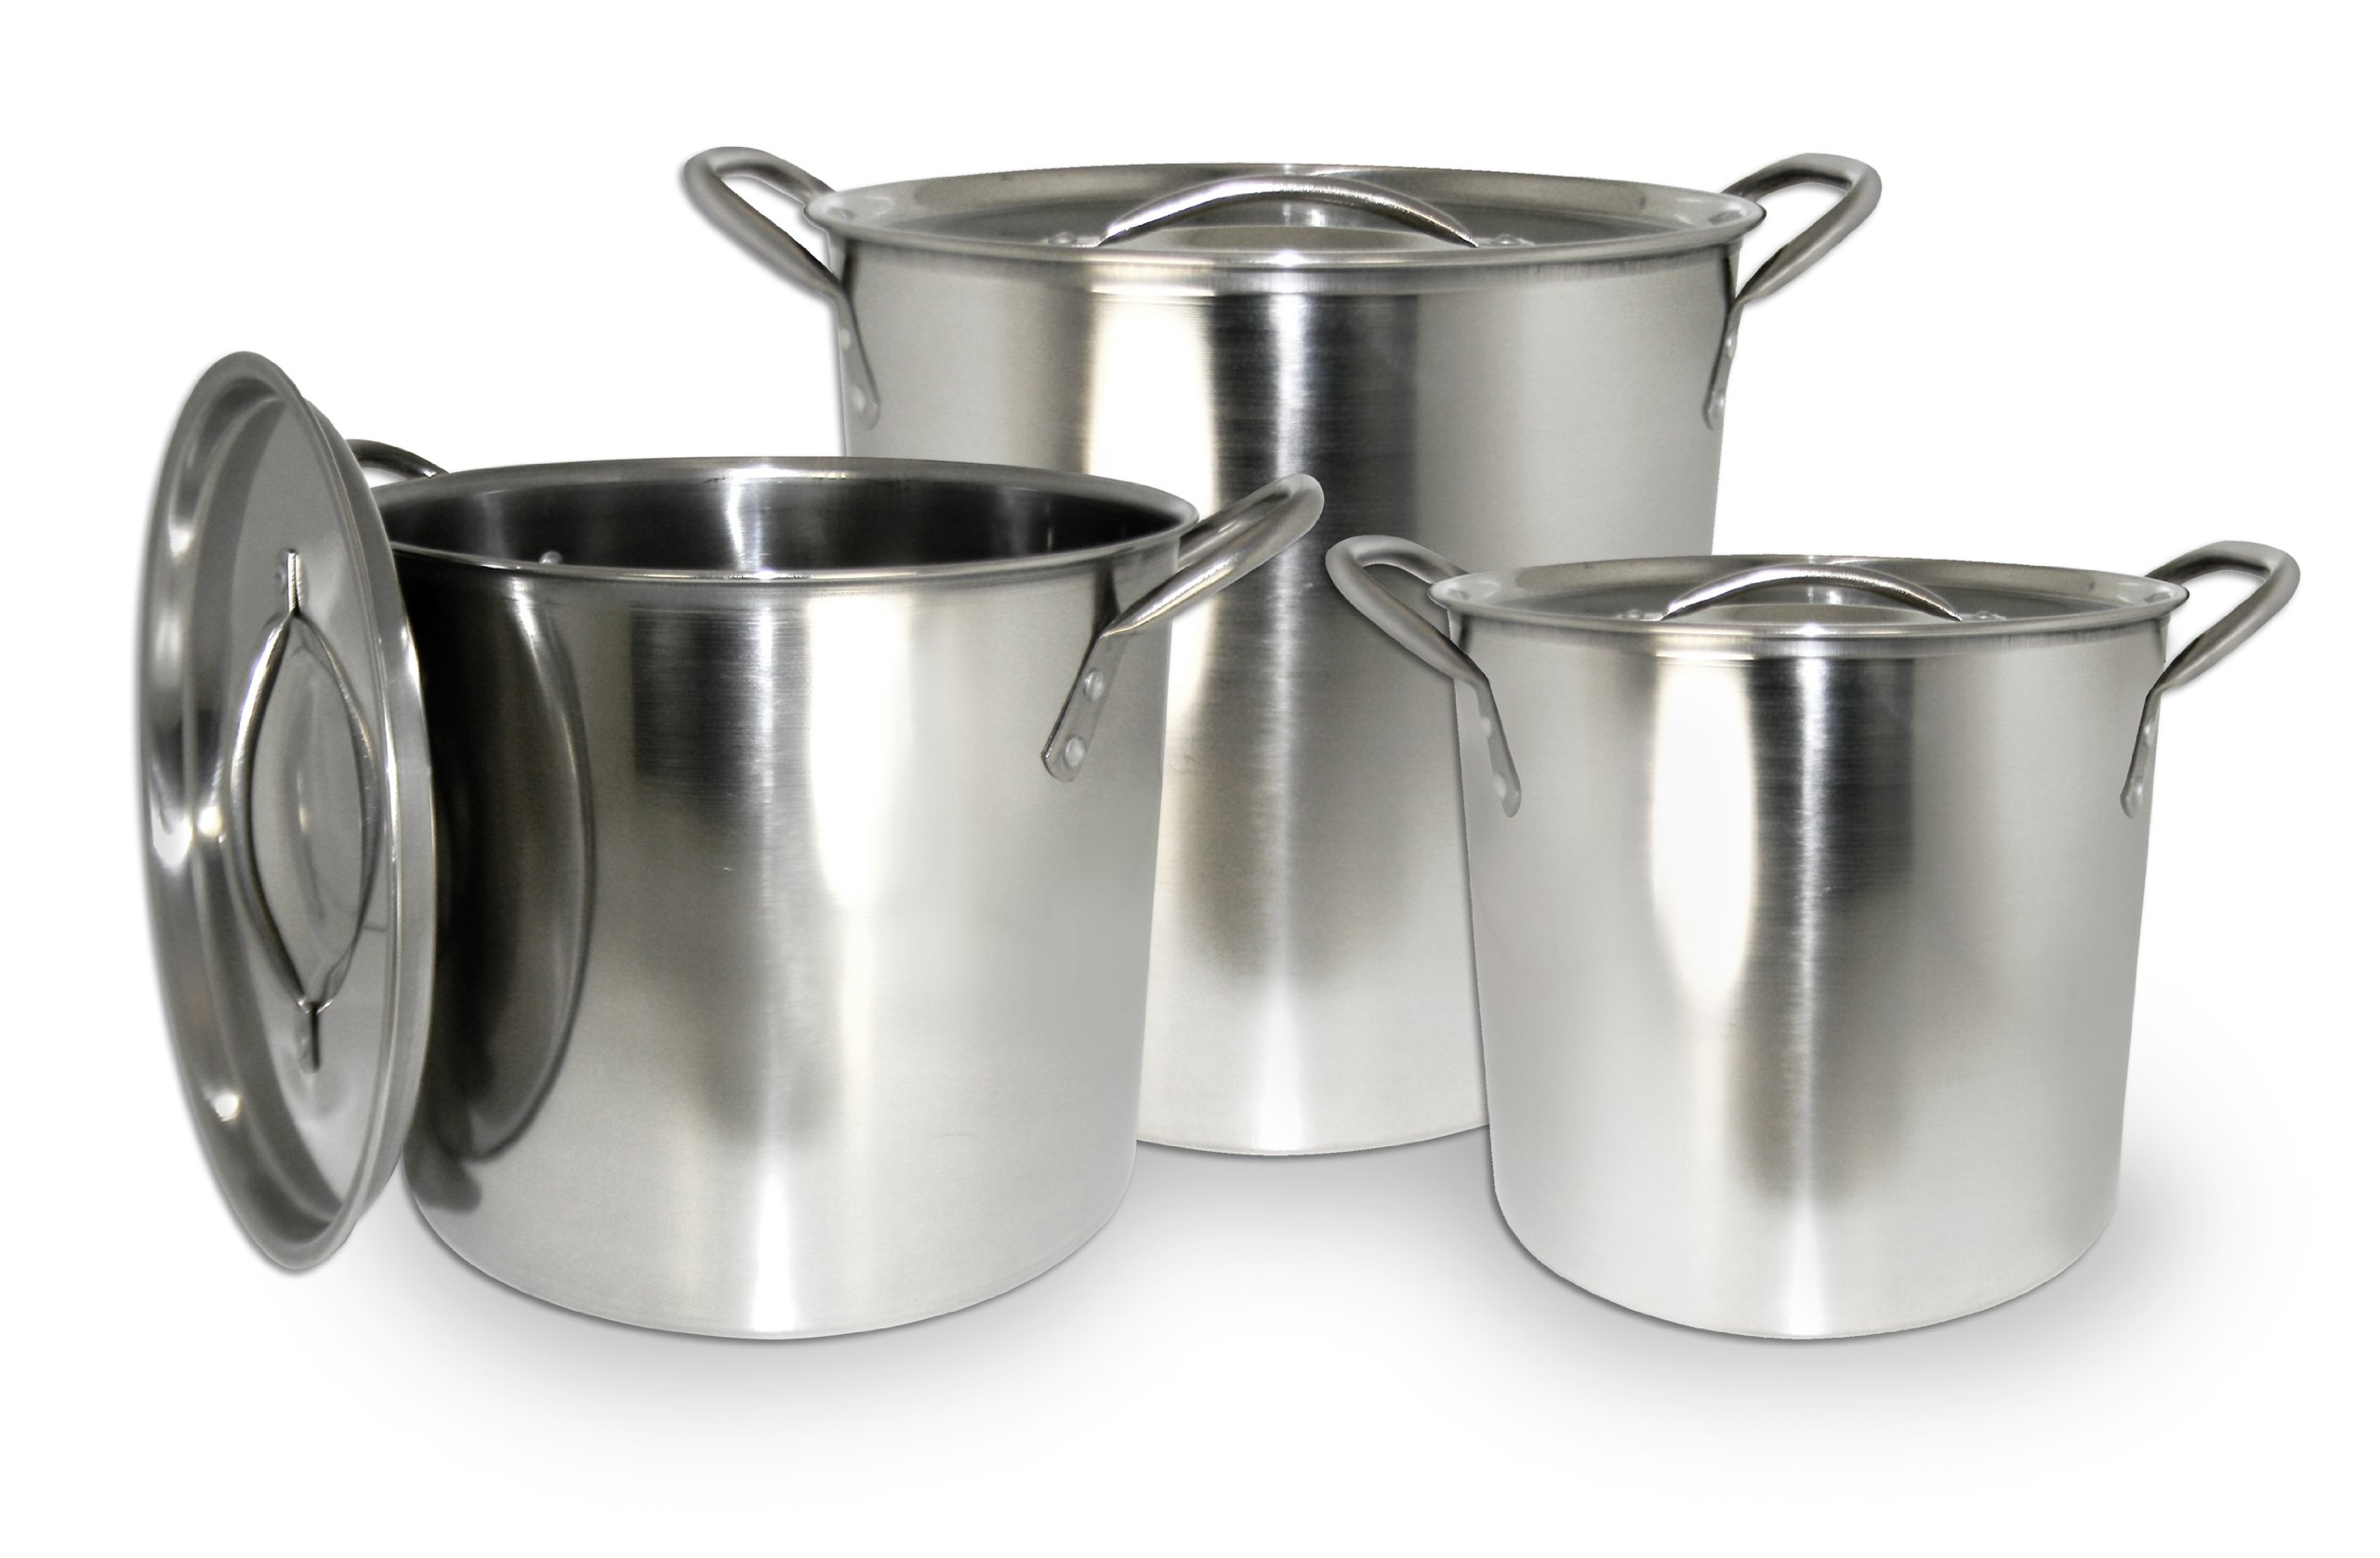 ExcelSteel 570 Stainless Steel Stockpot with with Lids, Set of 3, 3 Piece, Silver by ExcelSteel